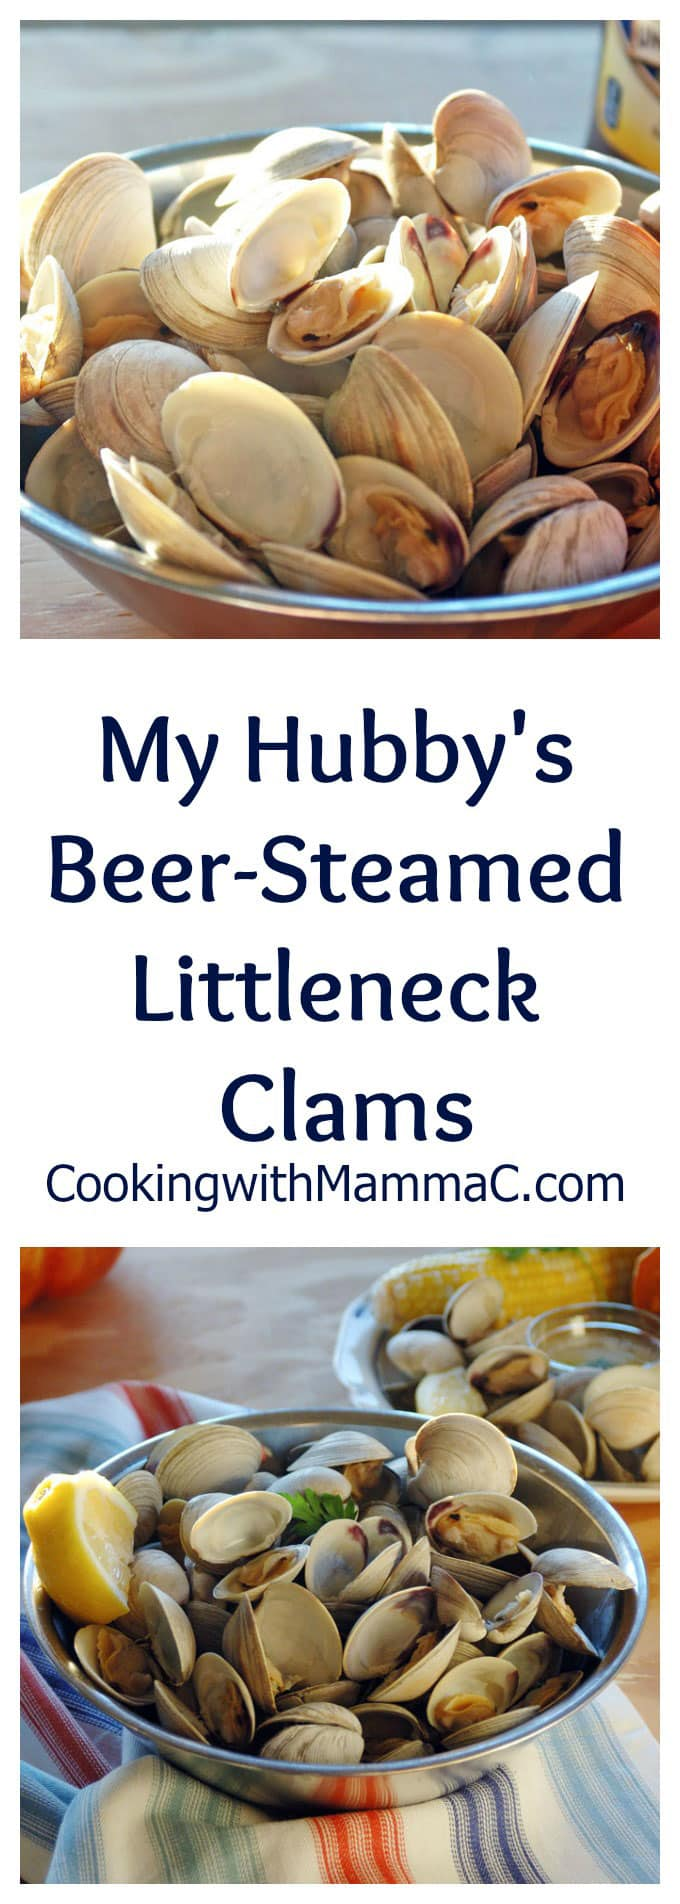 My Hubby's Beer-Steamed Littleneck Clams are so good dipped in melted butter! Plus, I'm sharing his tips for how to clean clams. #sponsored #MomentstoSavor #Tradewinds